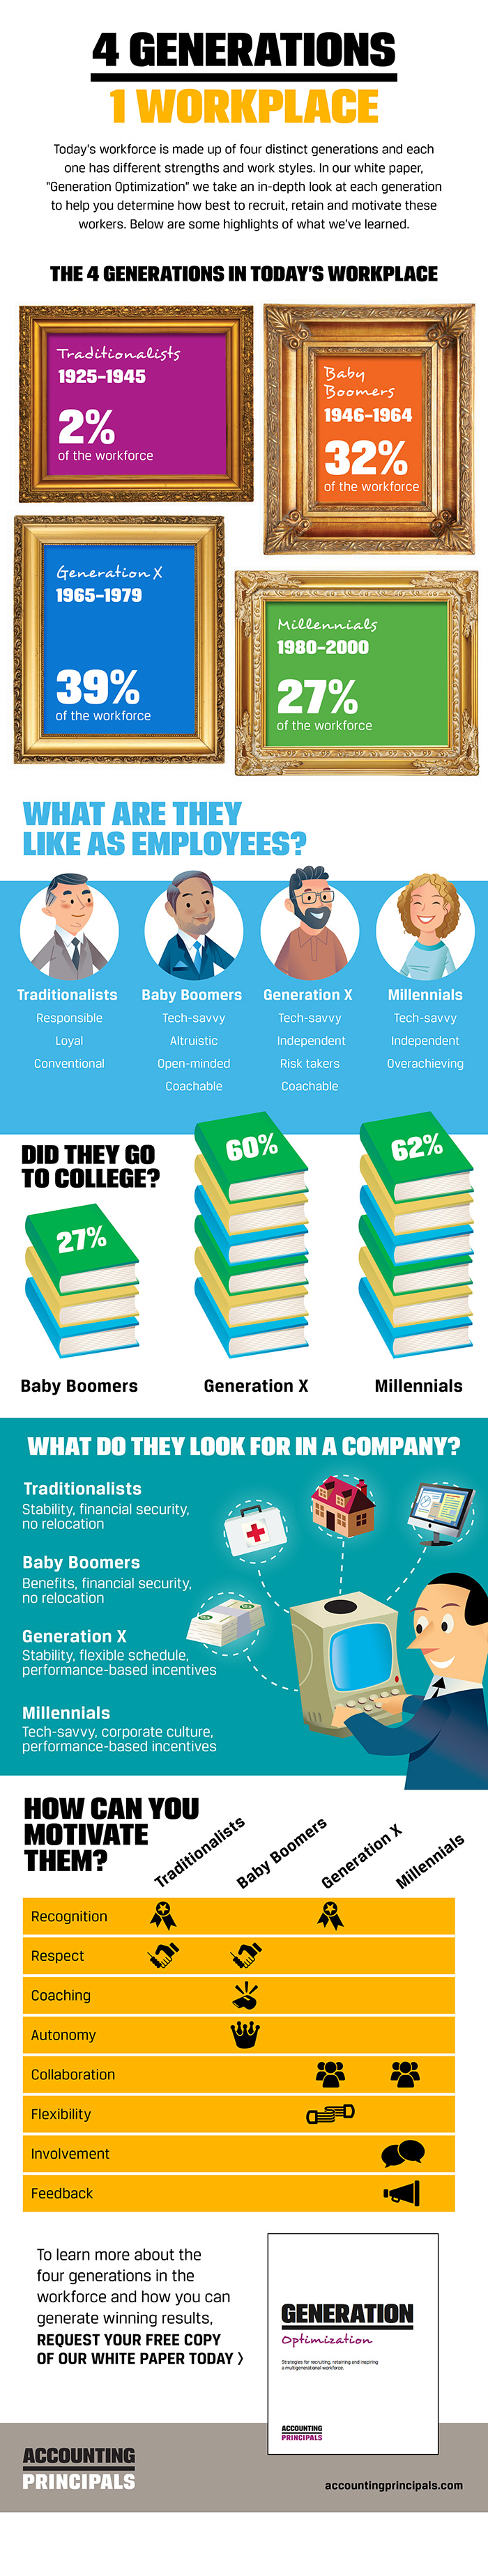 What Do Baby Boomers, Generation X and Millennials Look For At Work